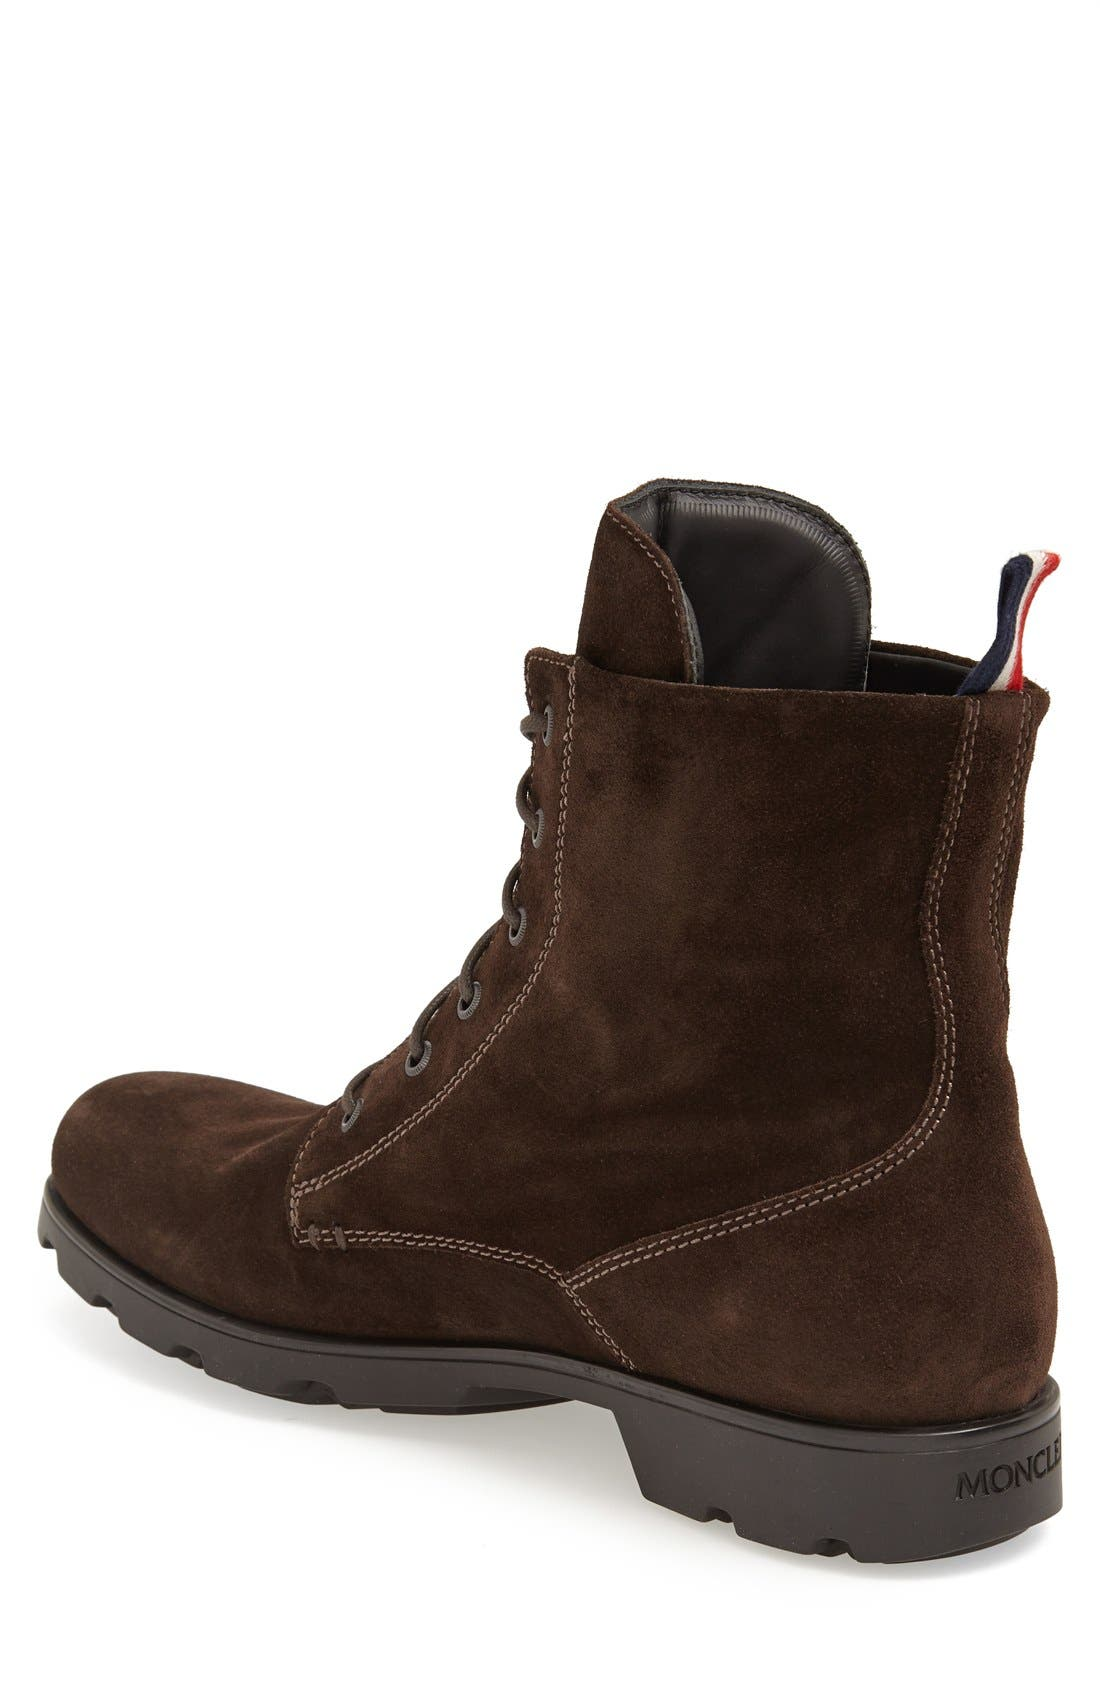 Alternate Image 2  - Moncler 'Vancouver' Plain Toe Boot (Men)